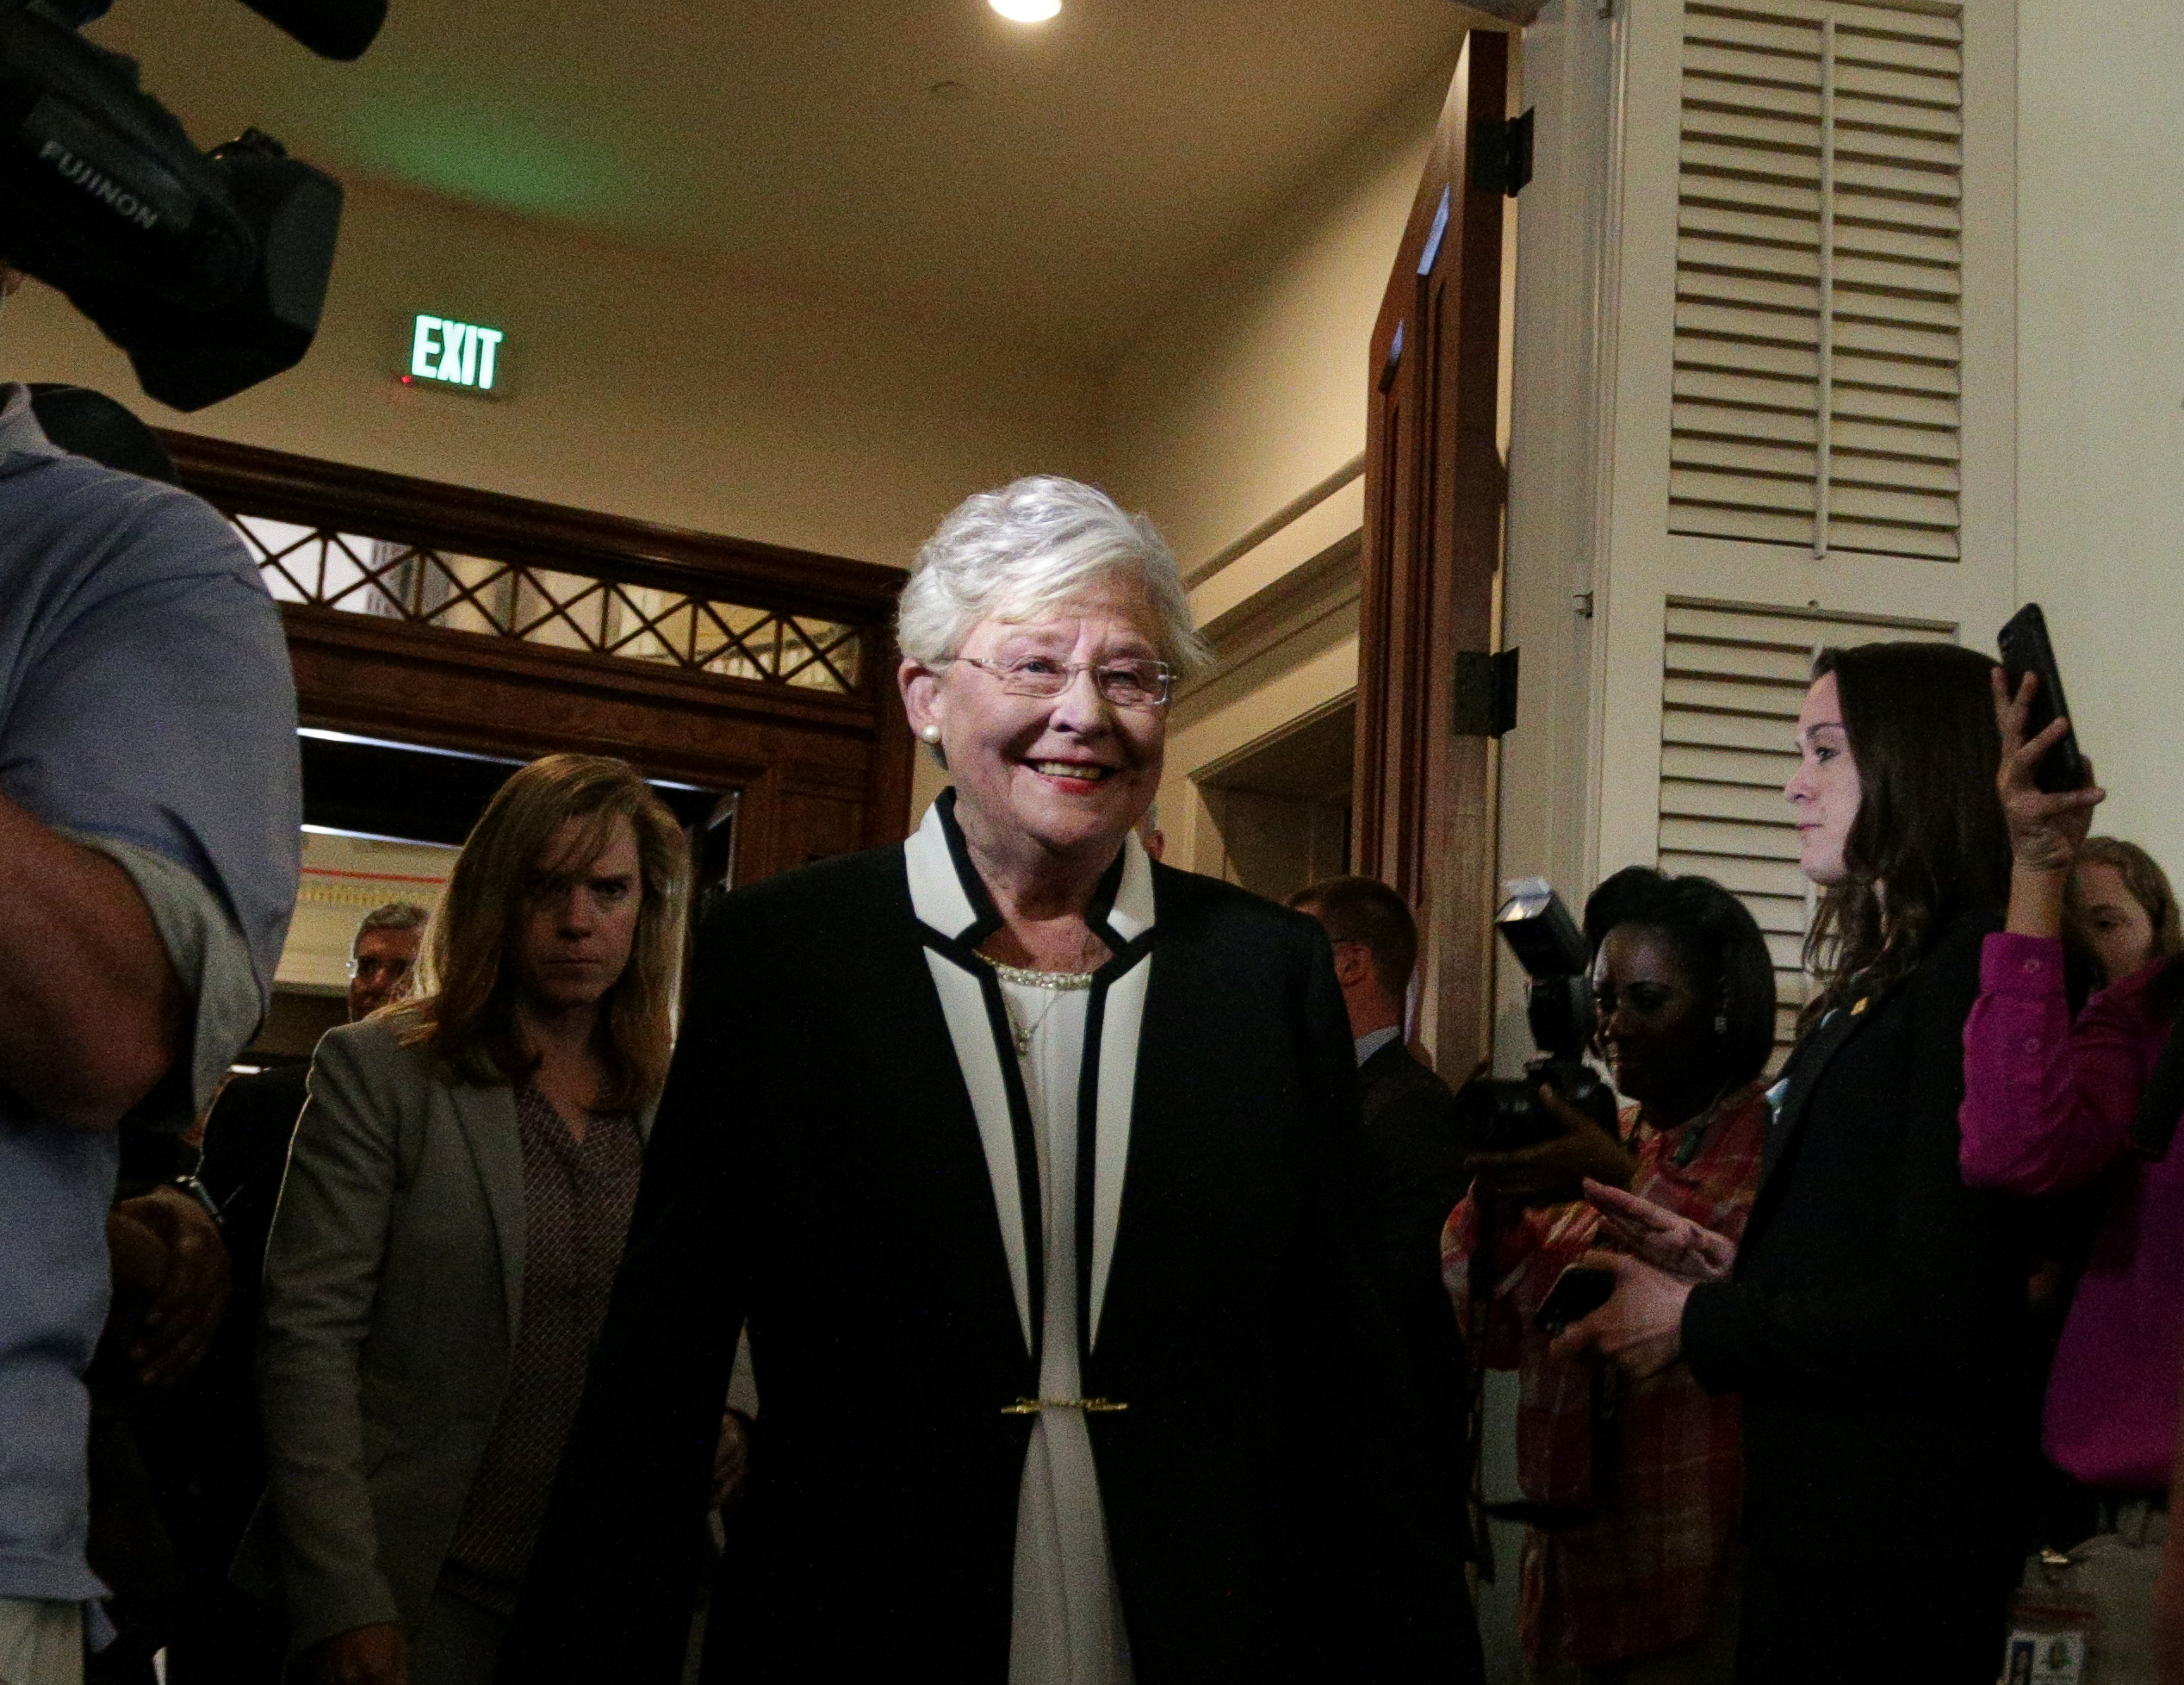 Alabama Lt Governor Kay Ivey enters the house chambers prior to being sworn in as Alabama's new governor in Montgomery